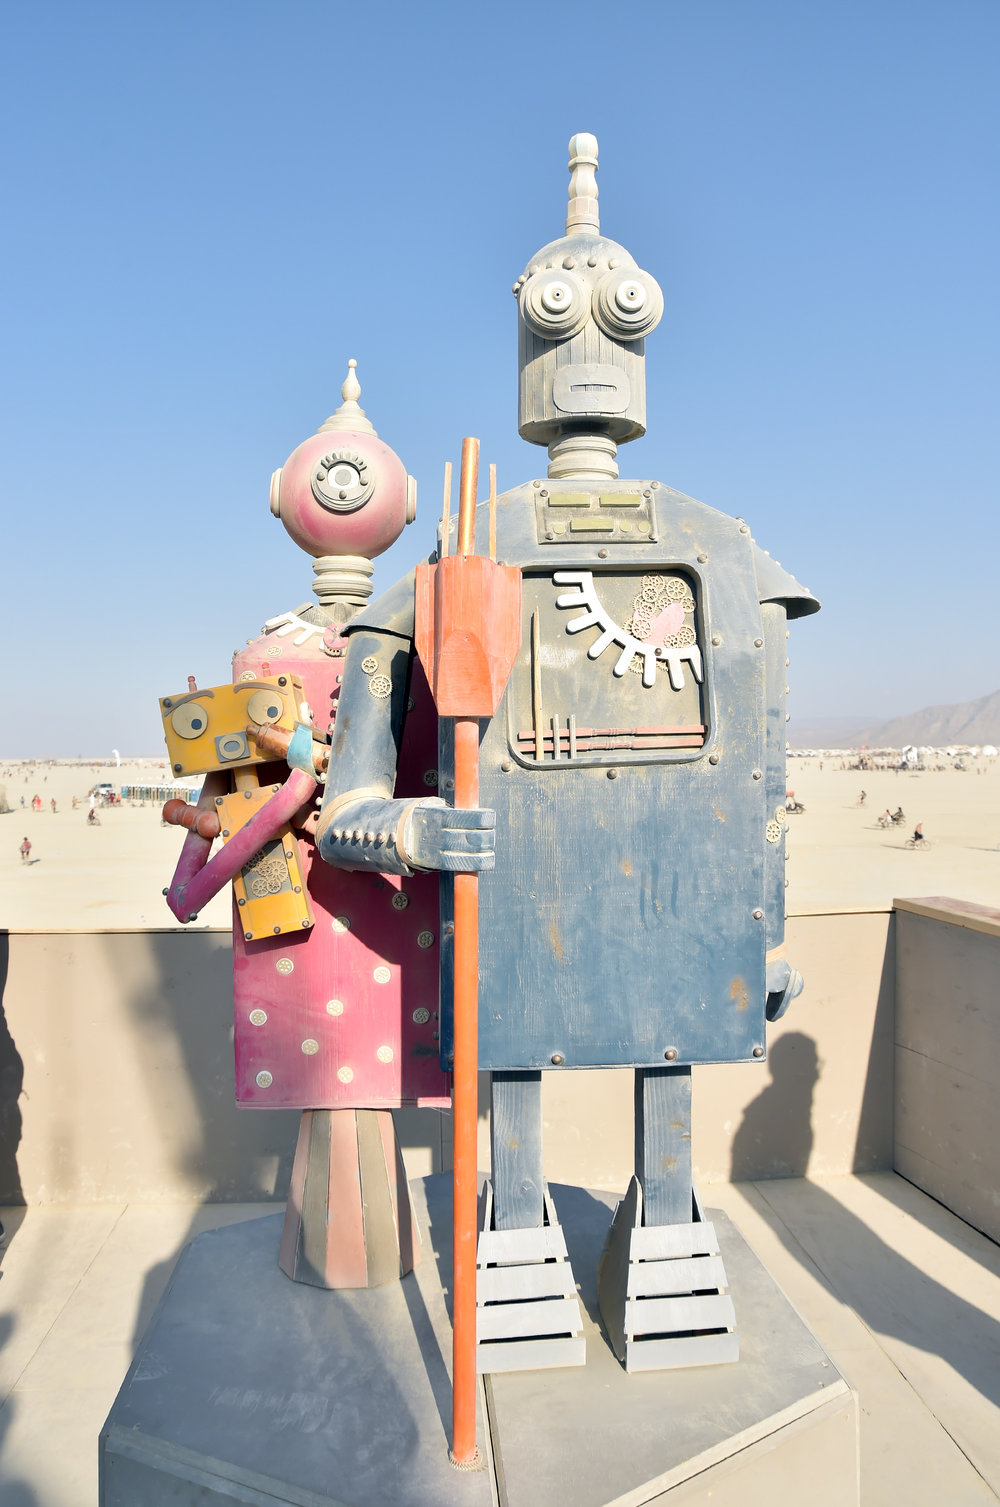 Burning Man Gothic, these two went up in flames